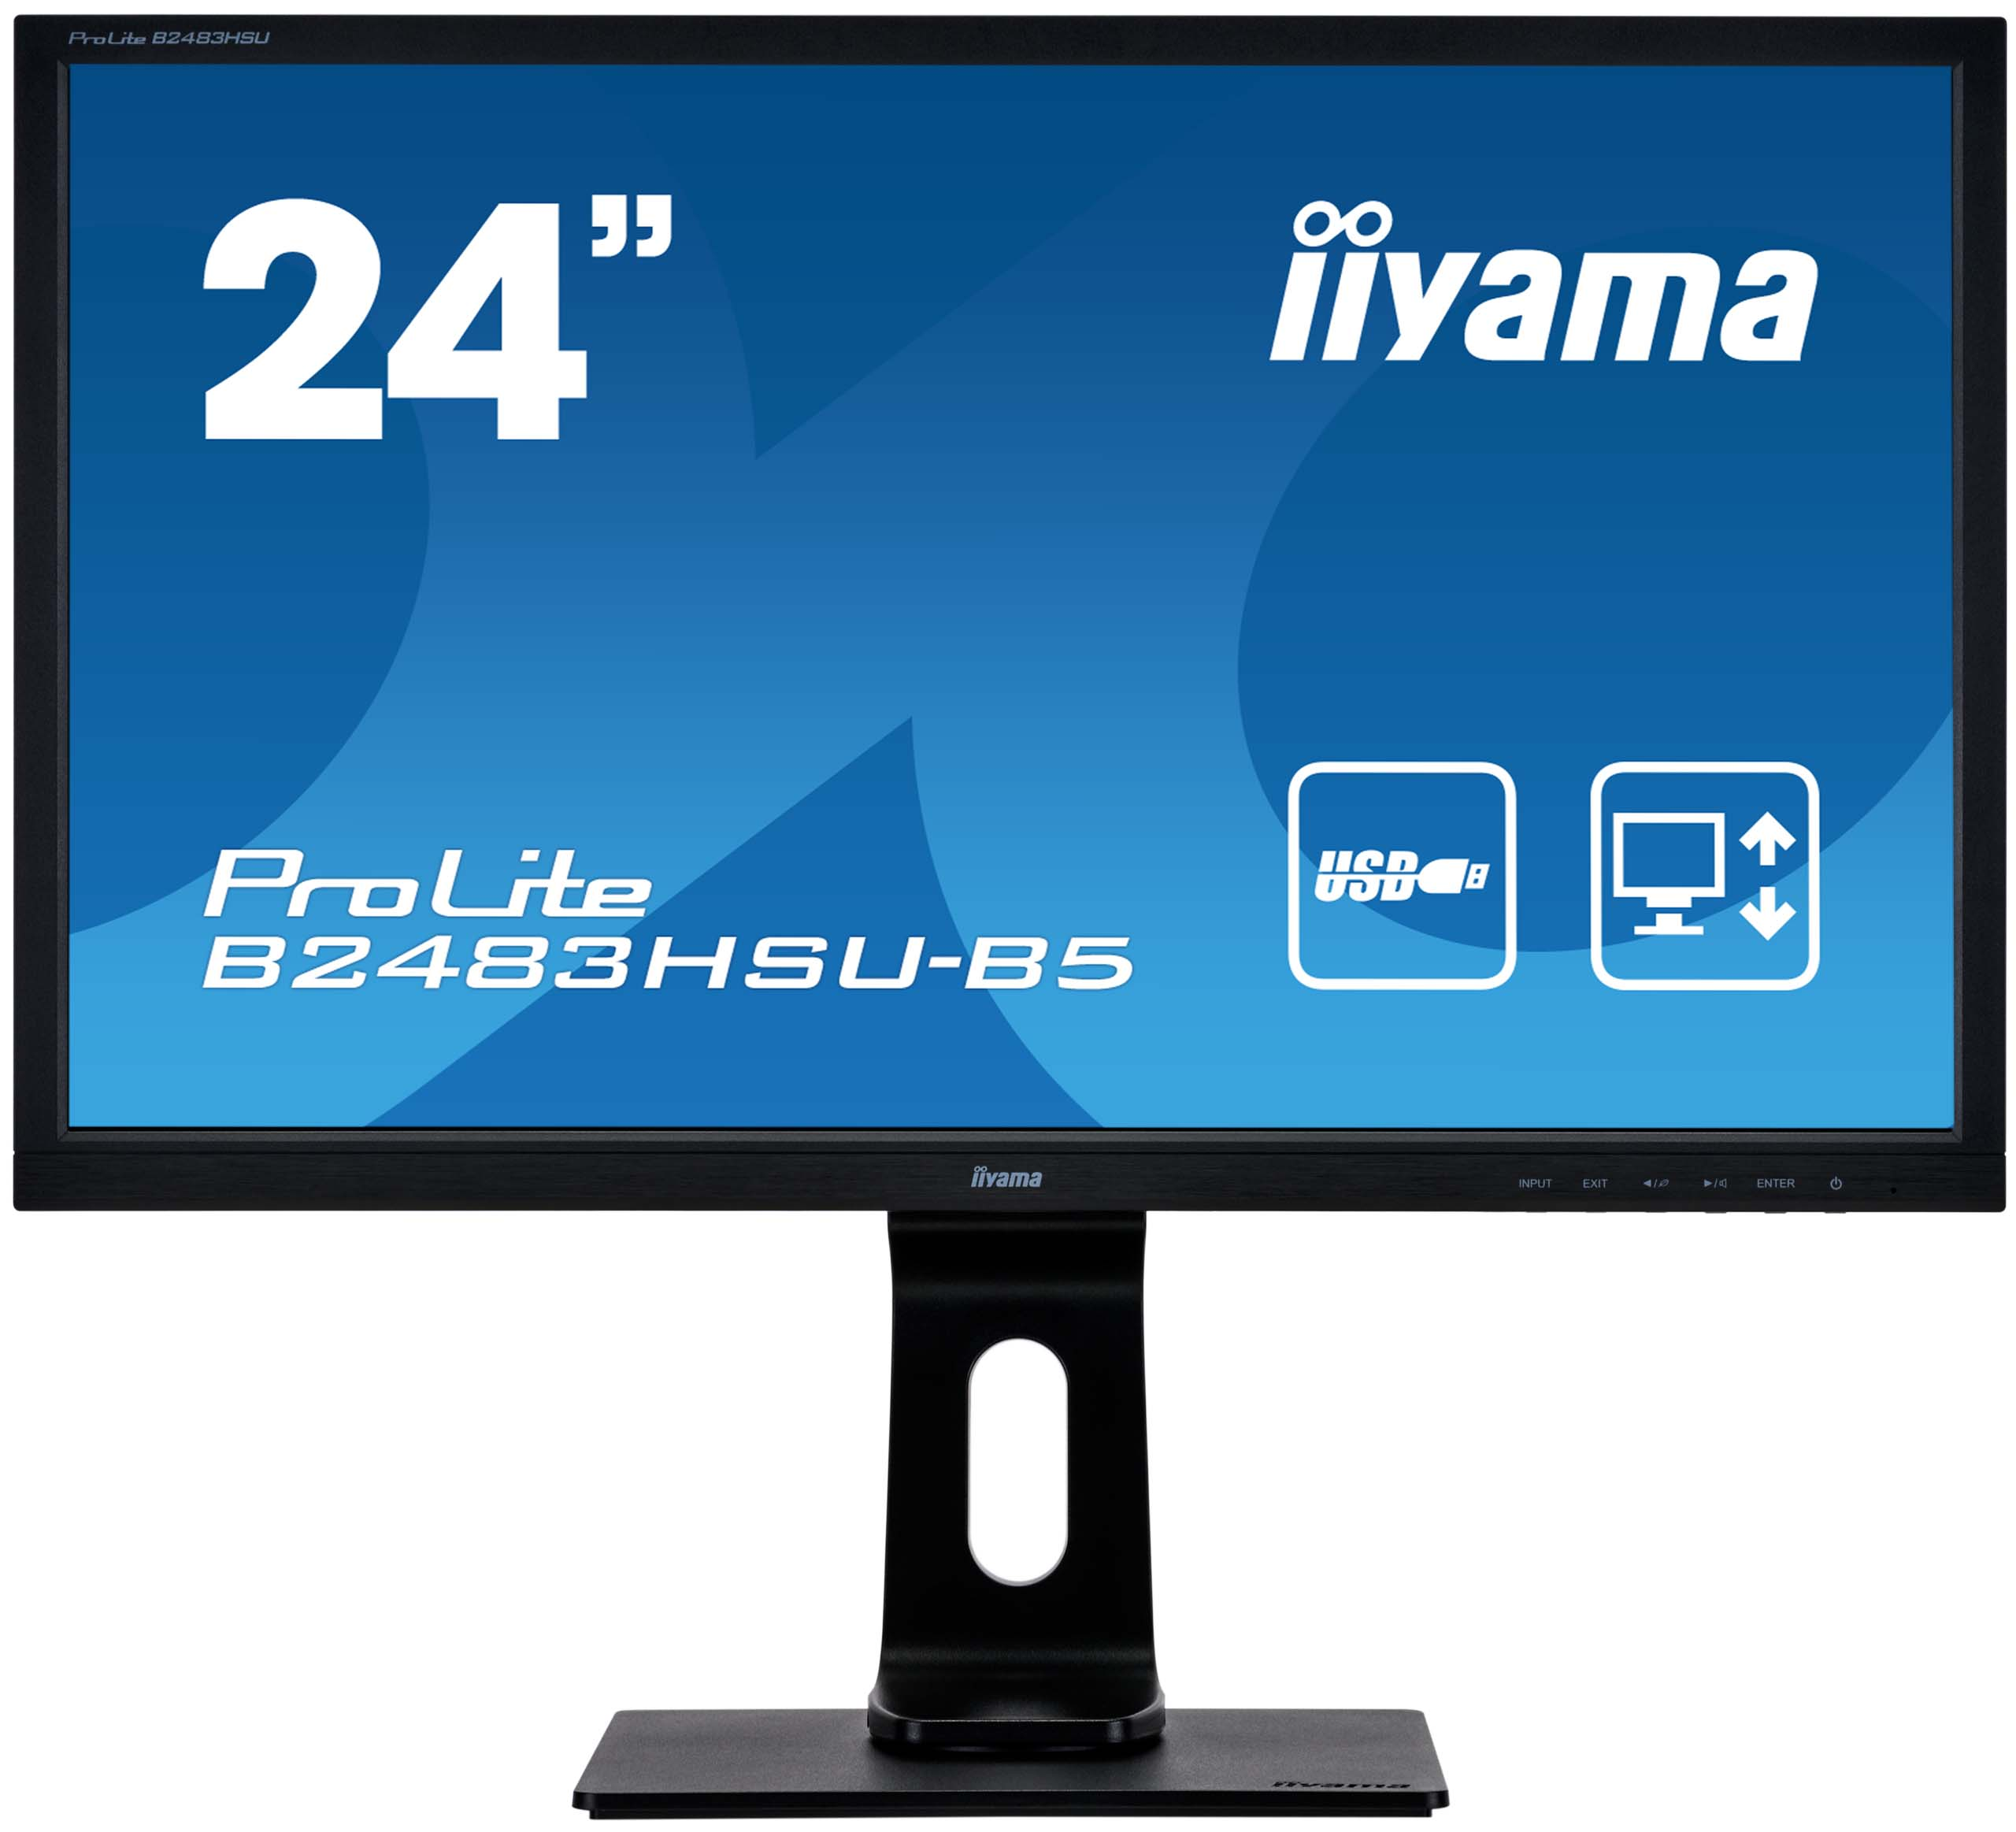 24'' iiyama B2483HSU-B5: TN, FullHD, 250cd/m2, 1ms, VGA, DP, HDMI, USB, height, pivot, černý